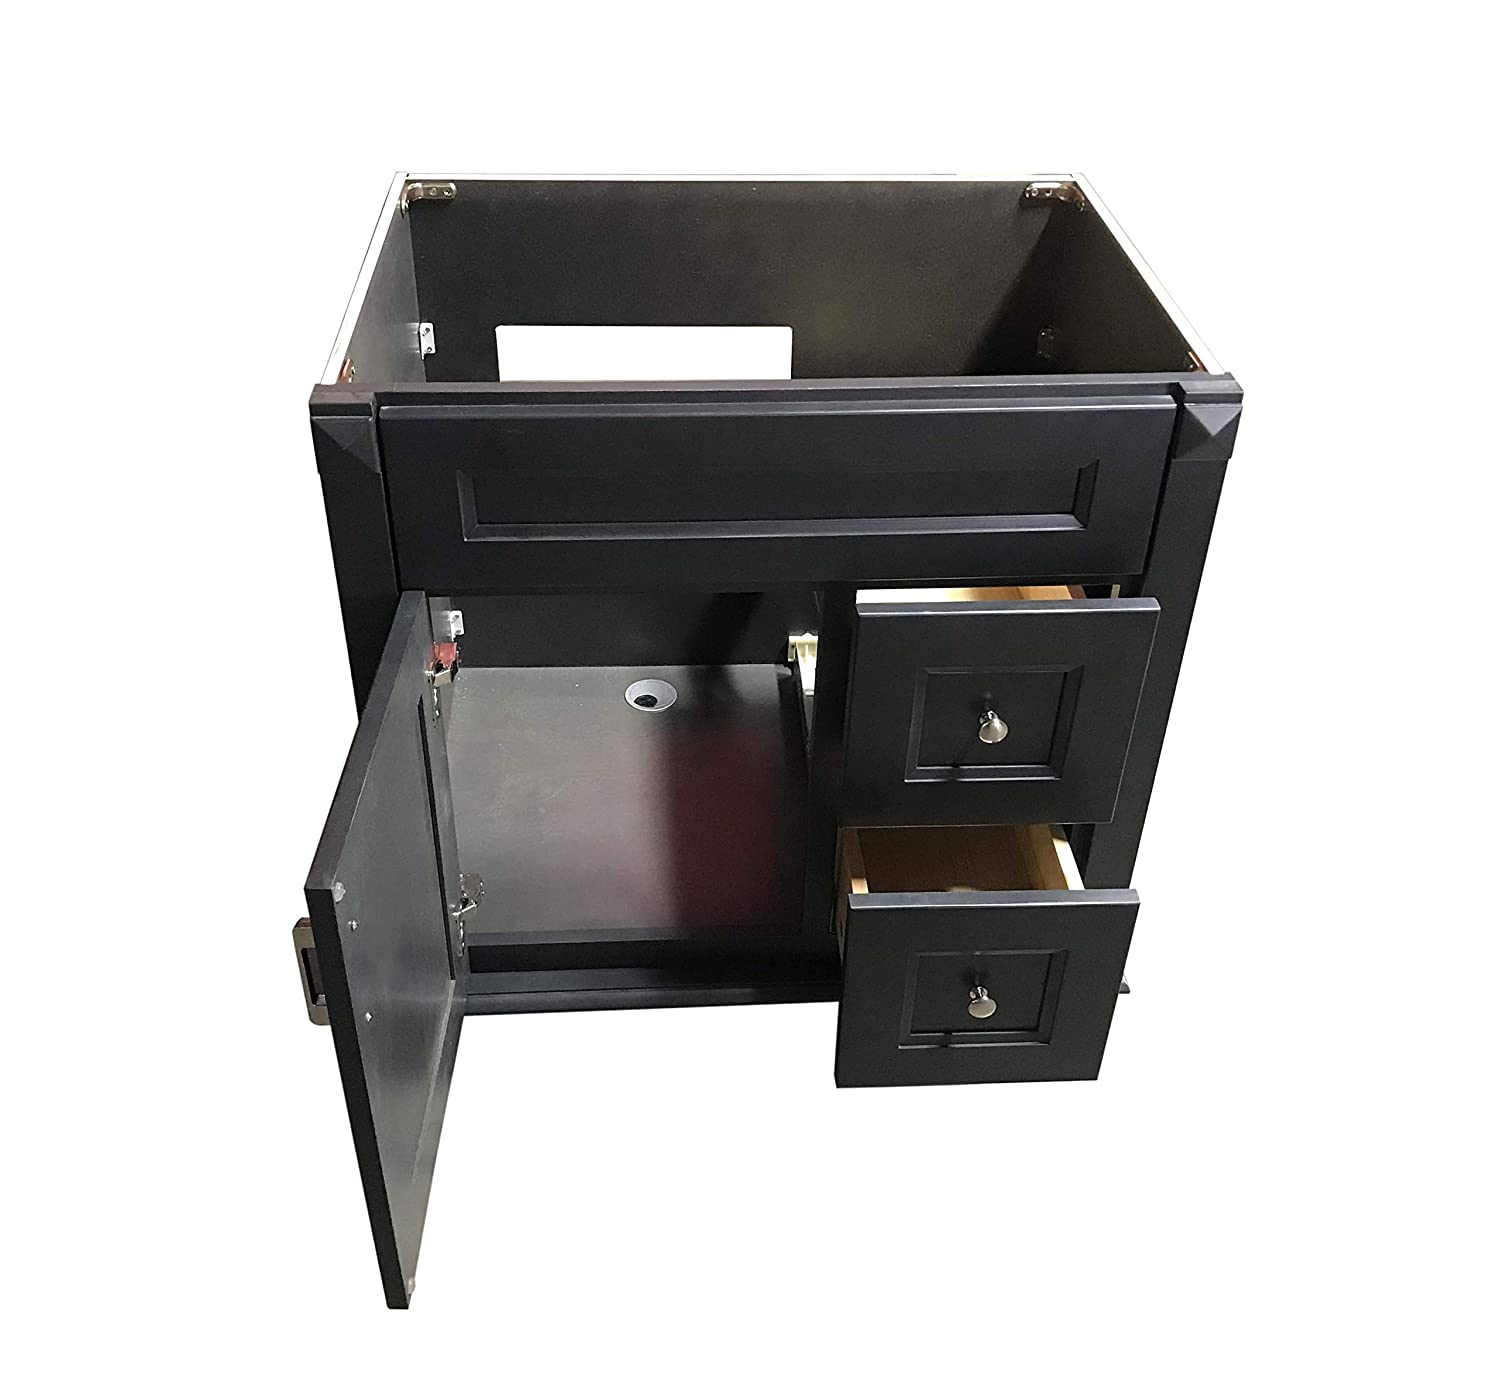 New Carbon Metallic Single-Sink Bathroom Vanity Base Cabinet 24 W x 21 D x 32 H